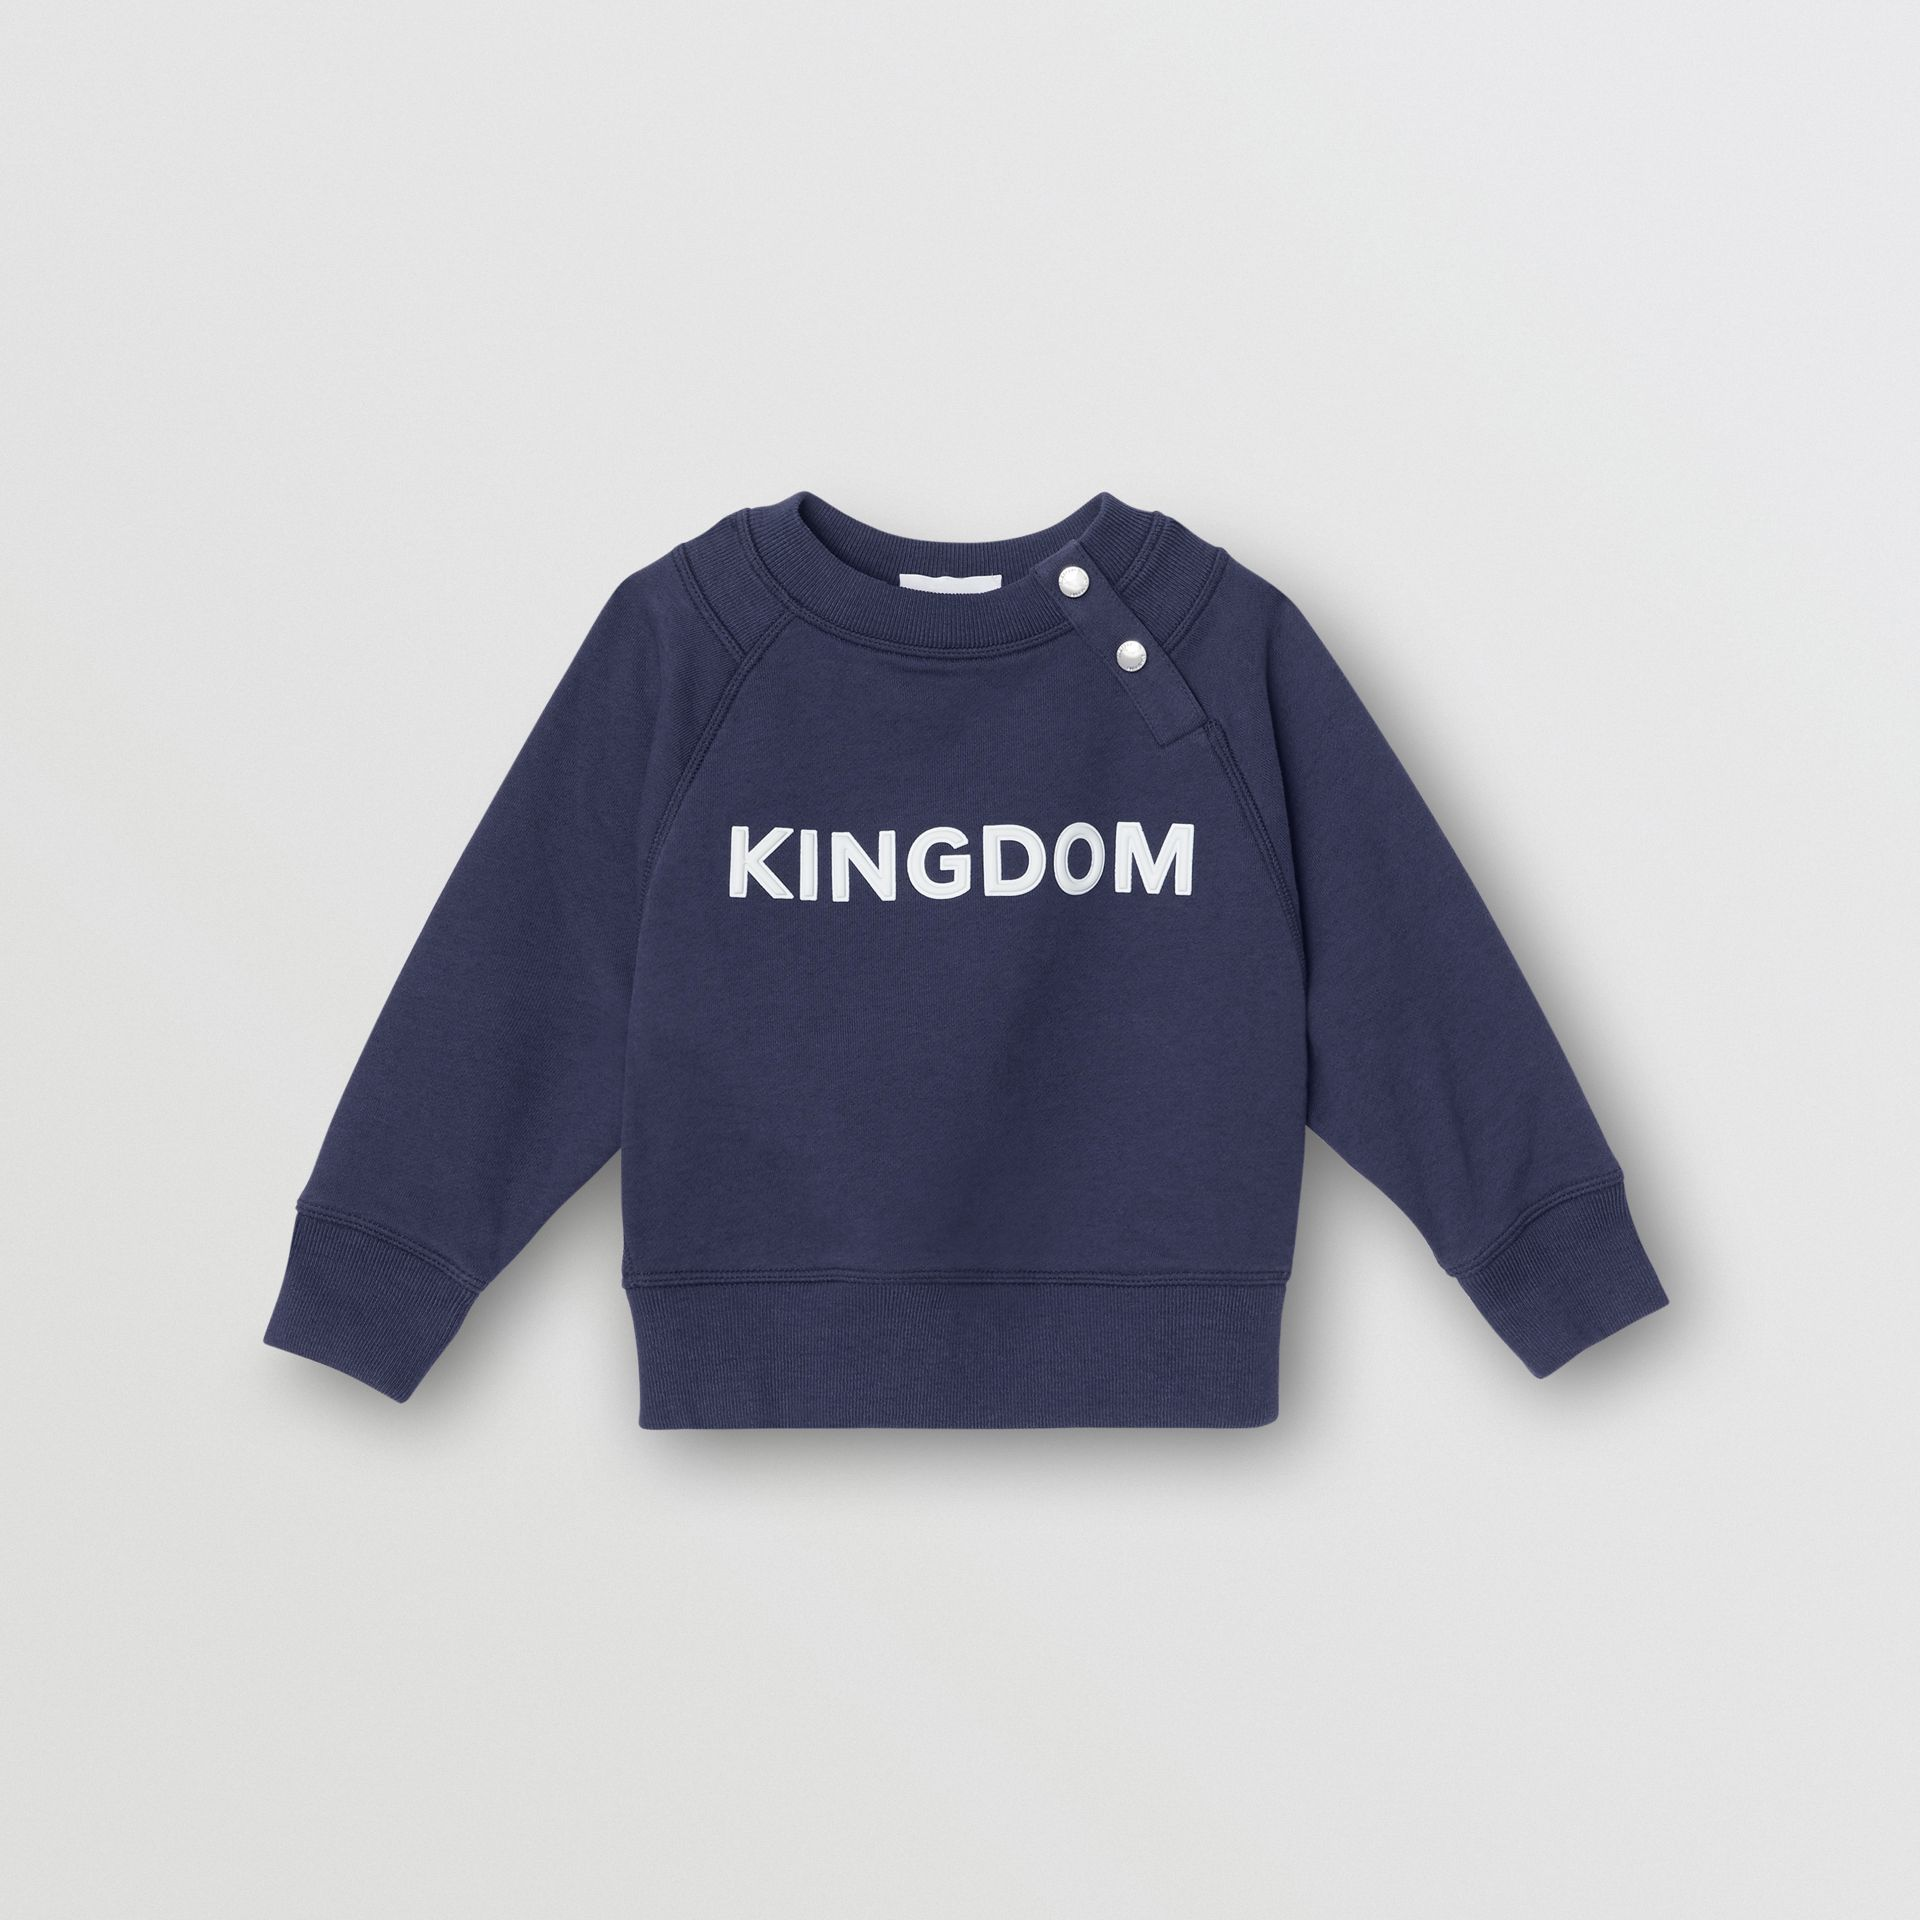 Kingdom Motif Cotton Sweatshirt in Slate Blue Melange - Children | Burberry - gallery image 0